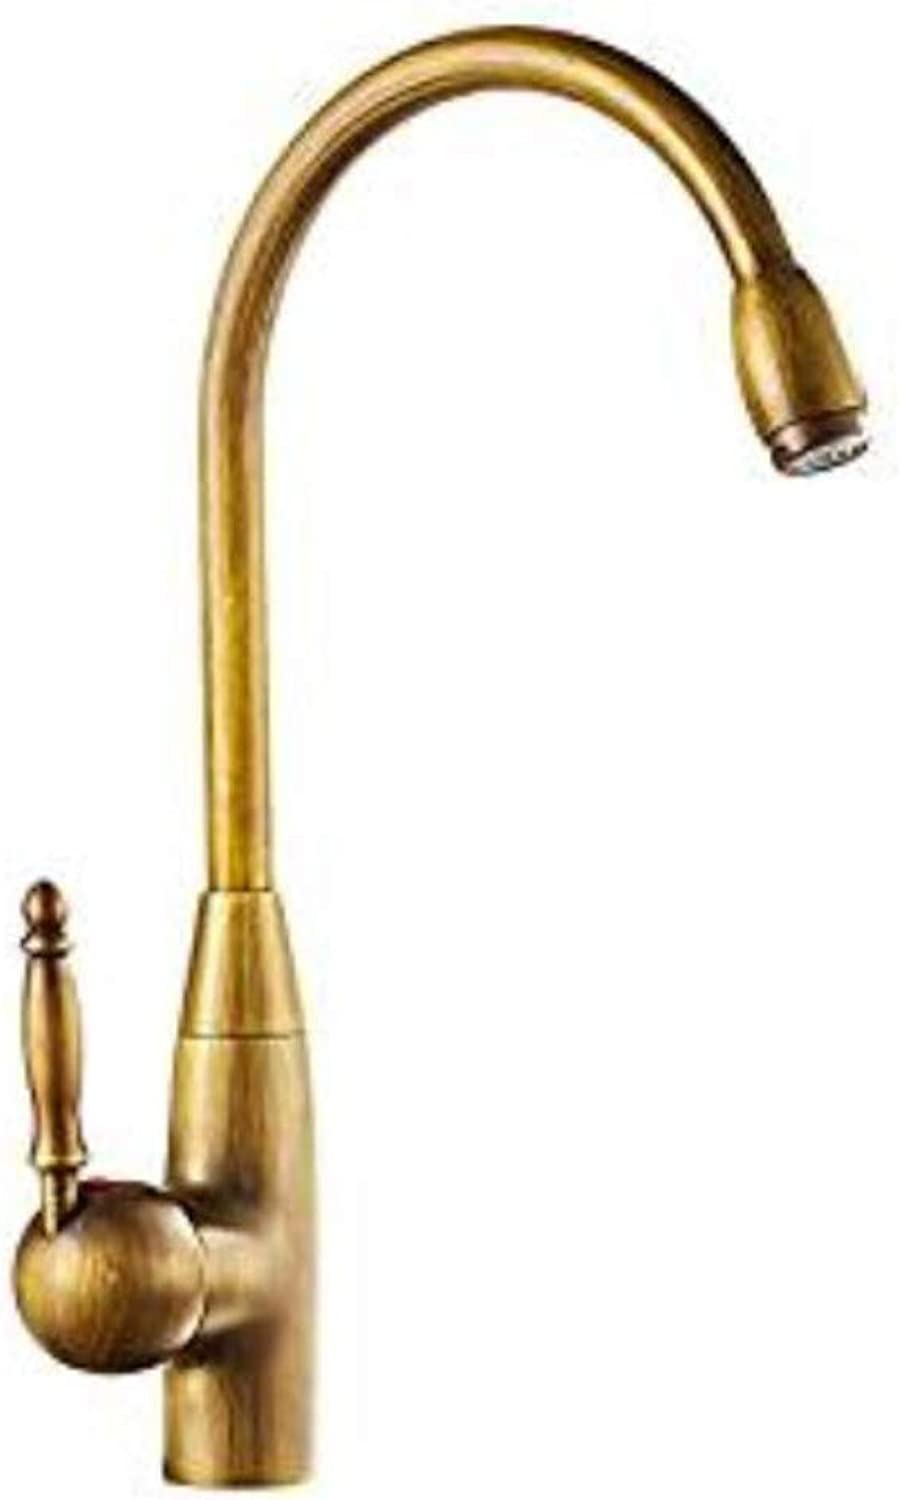 Taps Kitchen Sinkcopper Kitchen Hot and Cold Faucet Antique Retro Faucet Sink Faucet Basin Faucet Can Be redated